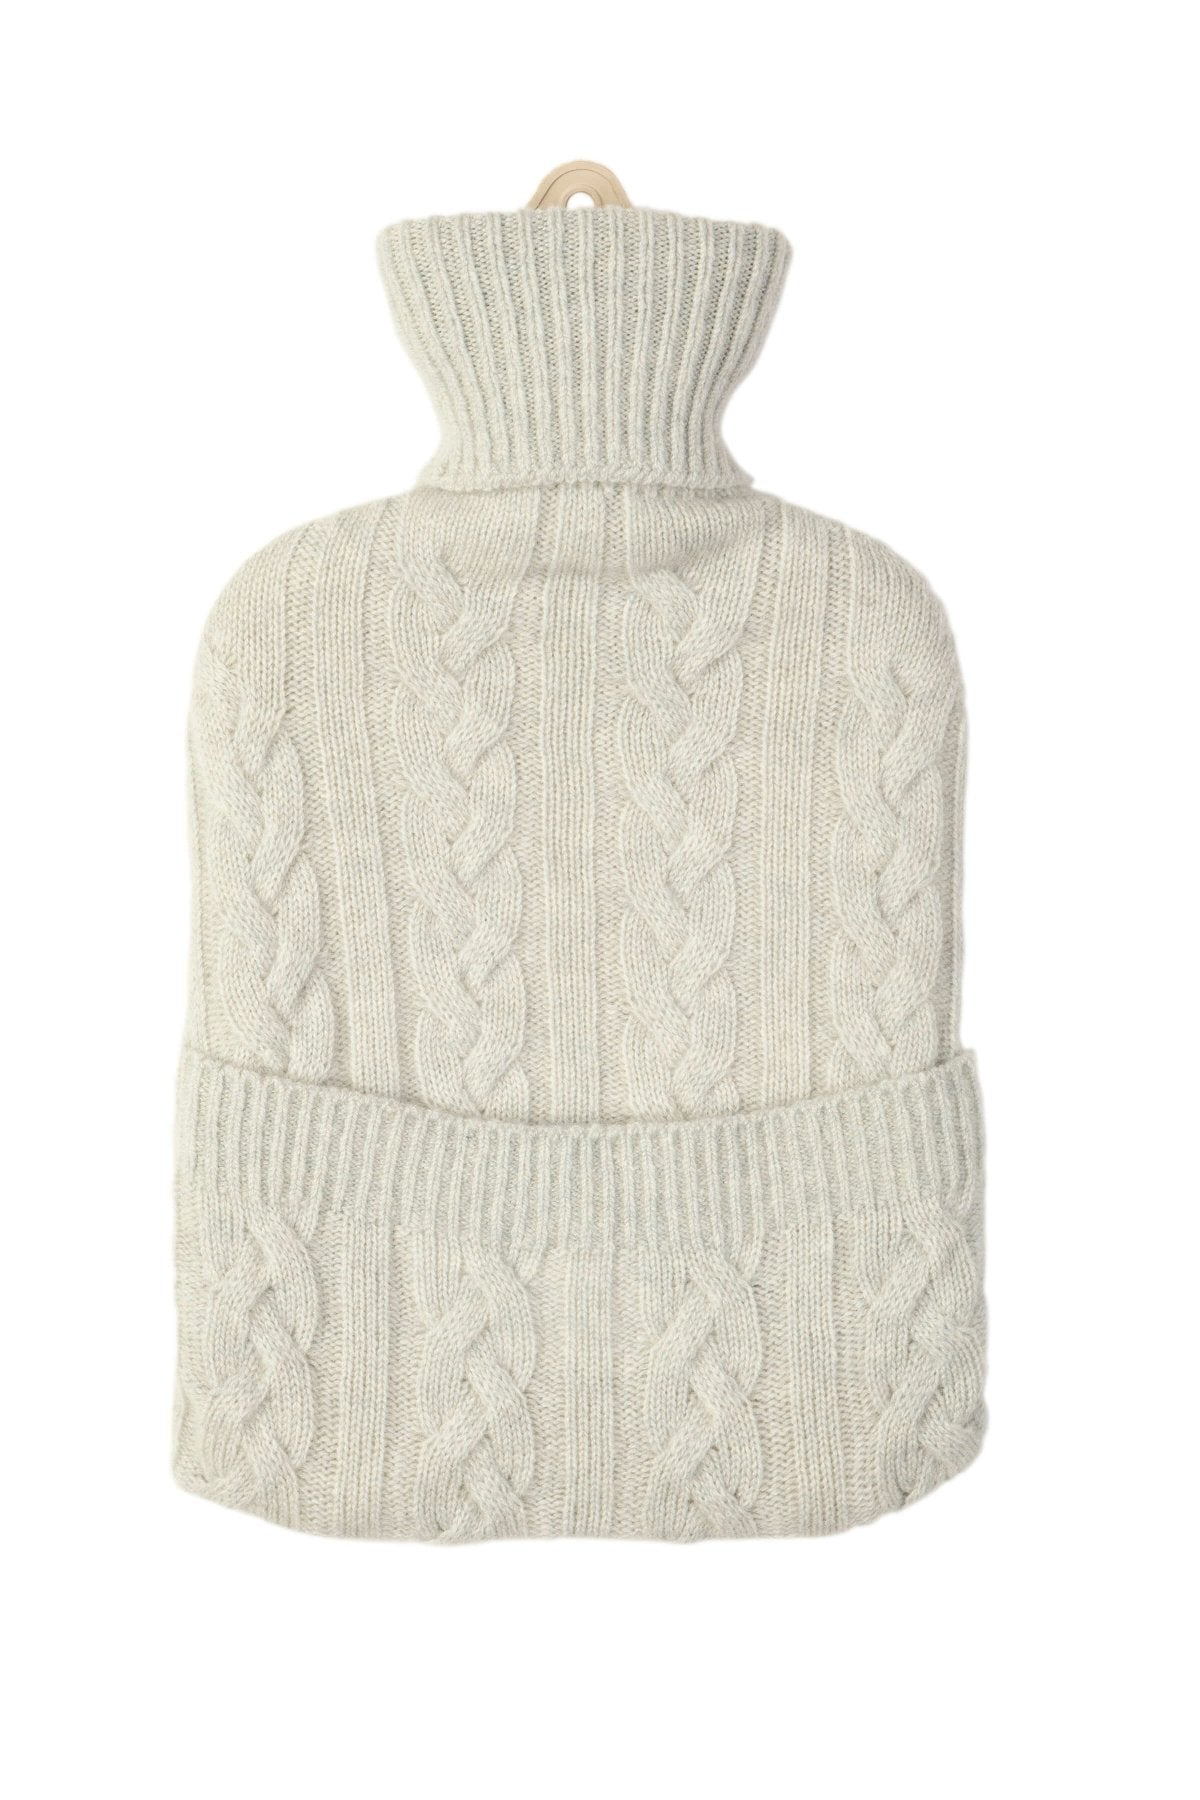 Dove Grey Cable Cashmere Hot Water Bottle